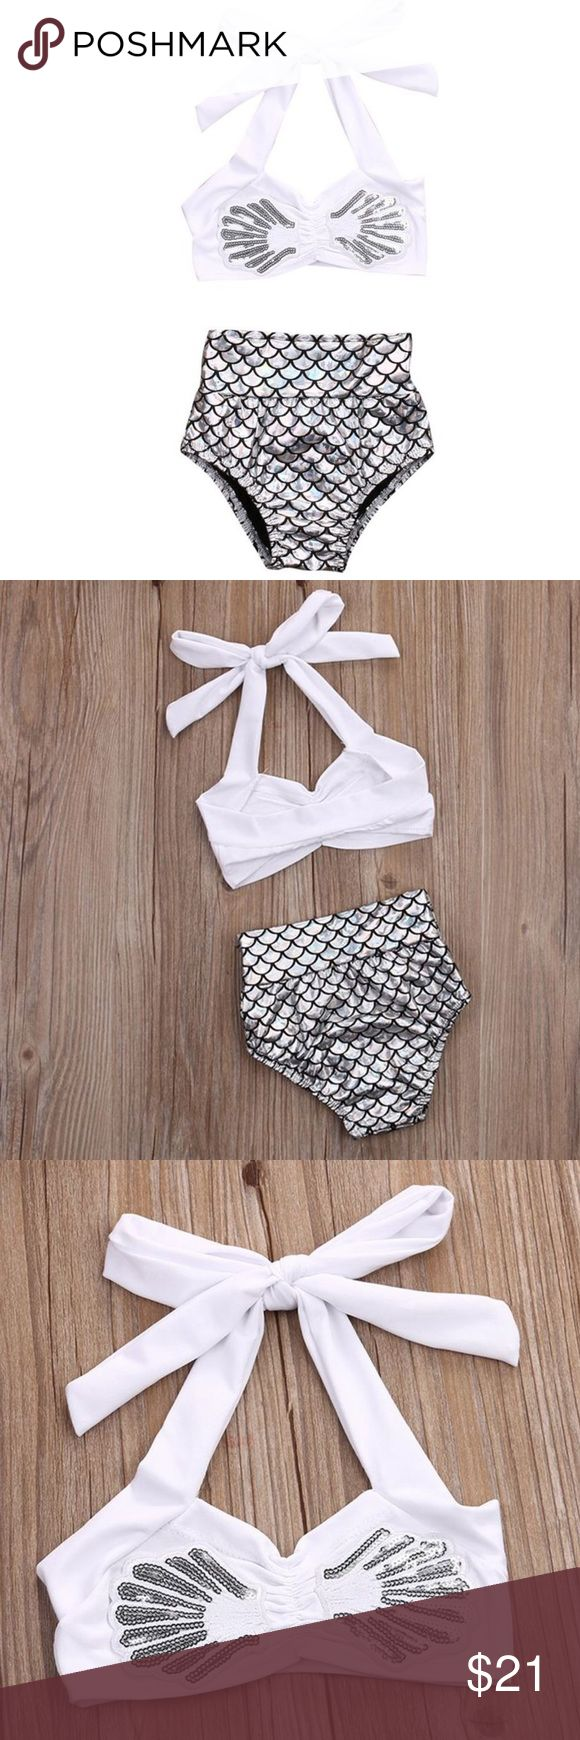 Mermaid bathing suit White and silver mermaid bathing suit. Halter top with high waisted bottoms. Swim Bikinis